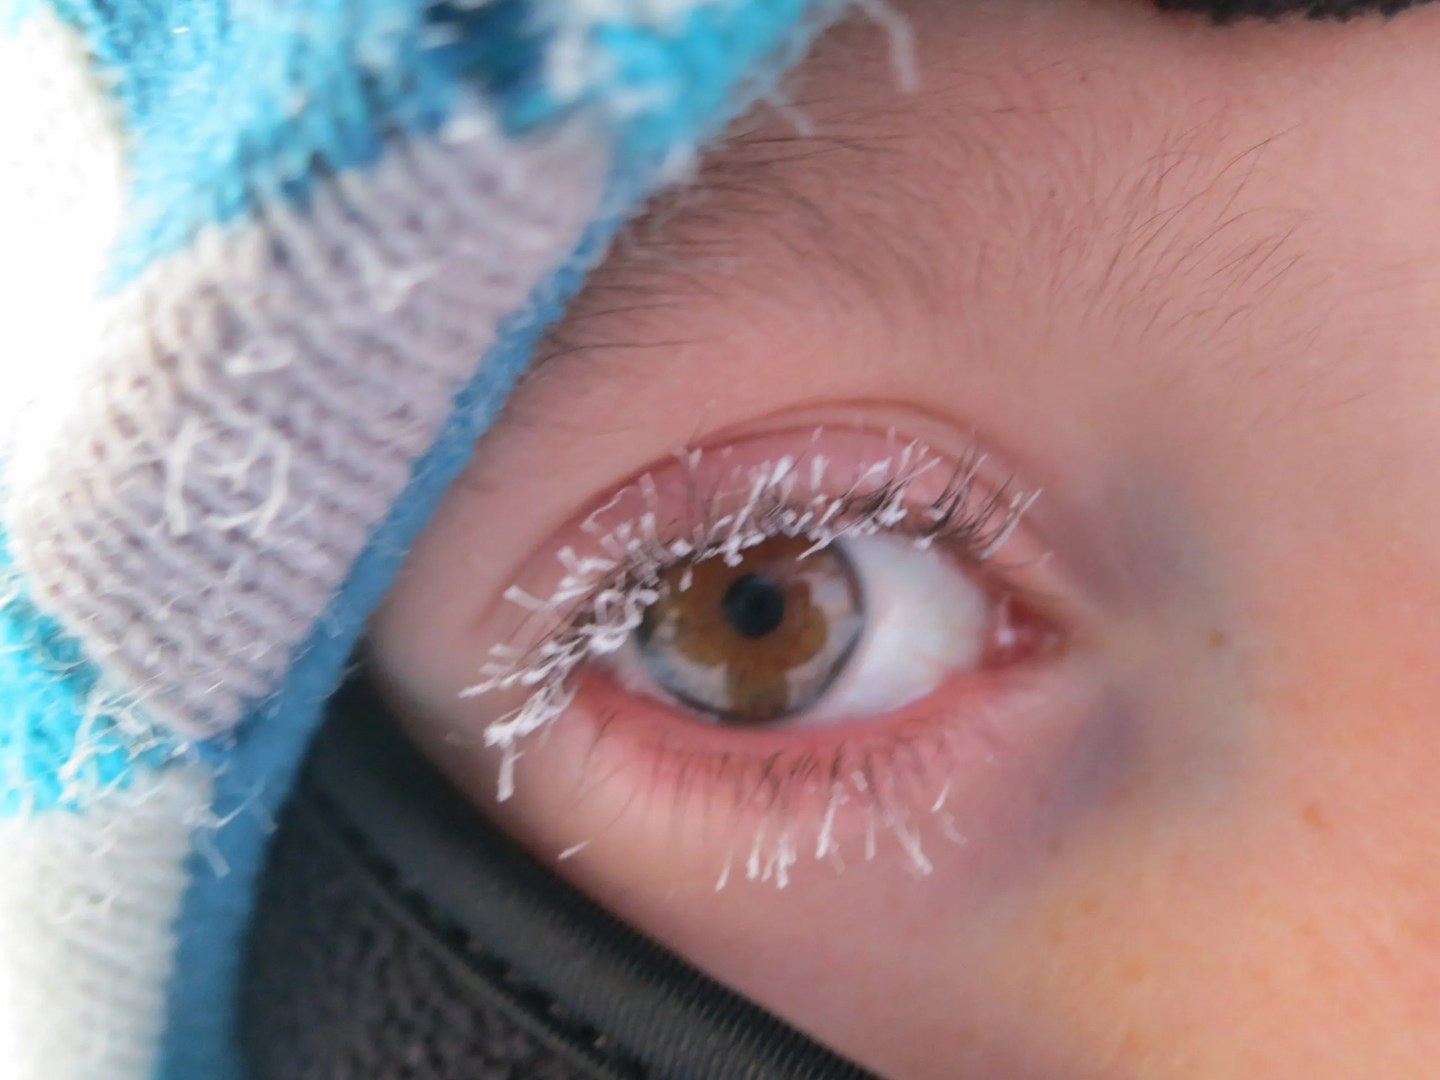 Frosted eye